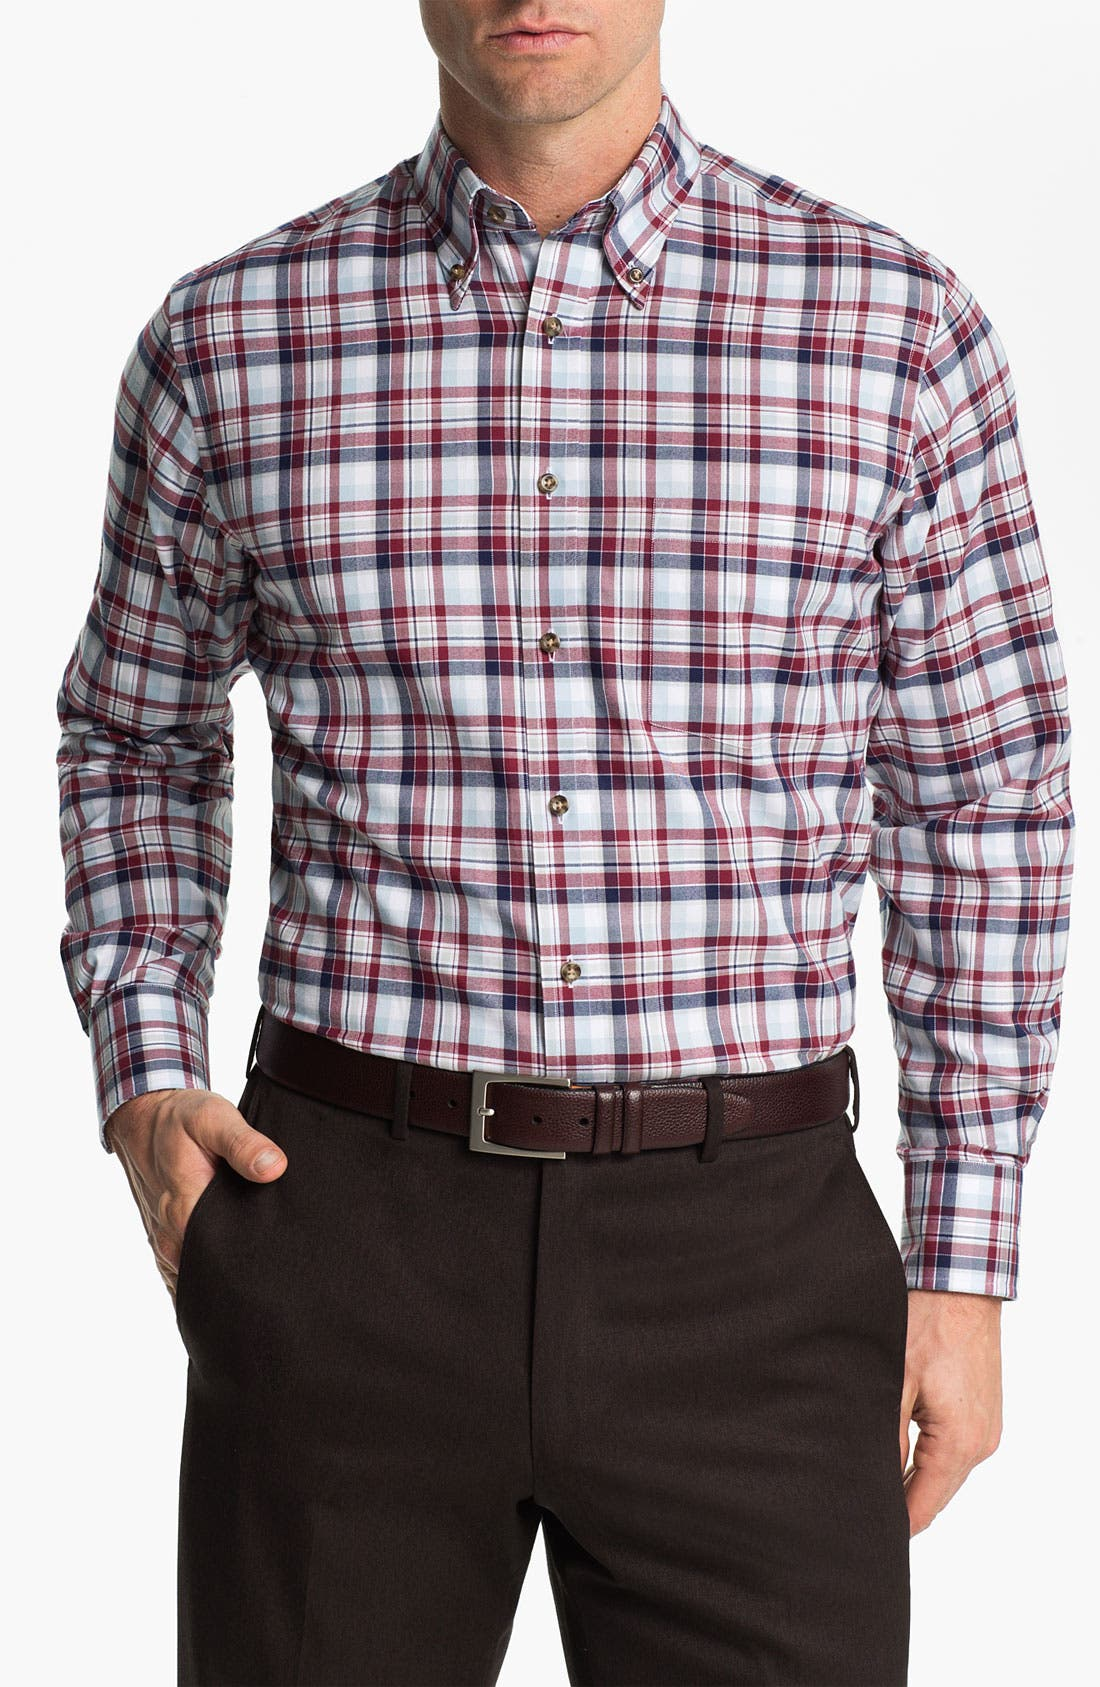 Alternate Image 1 Selected - Maker & Company Sport Shirt (Online Exclusive)